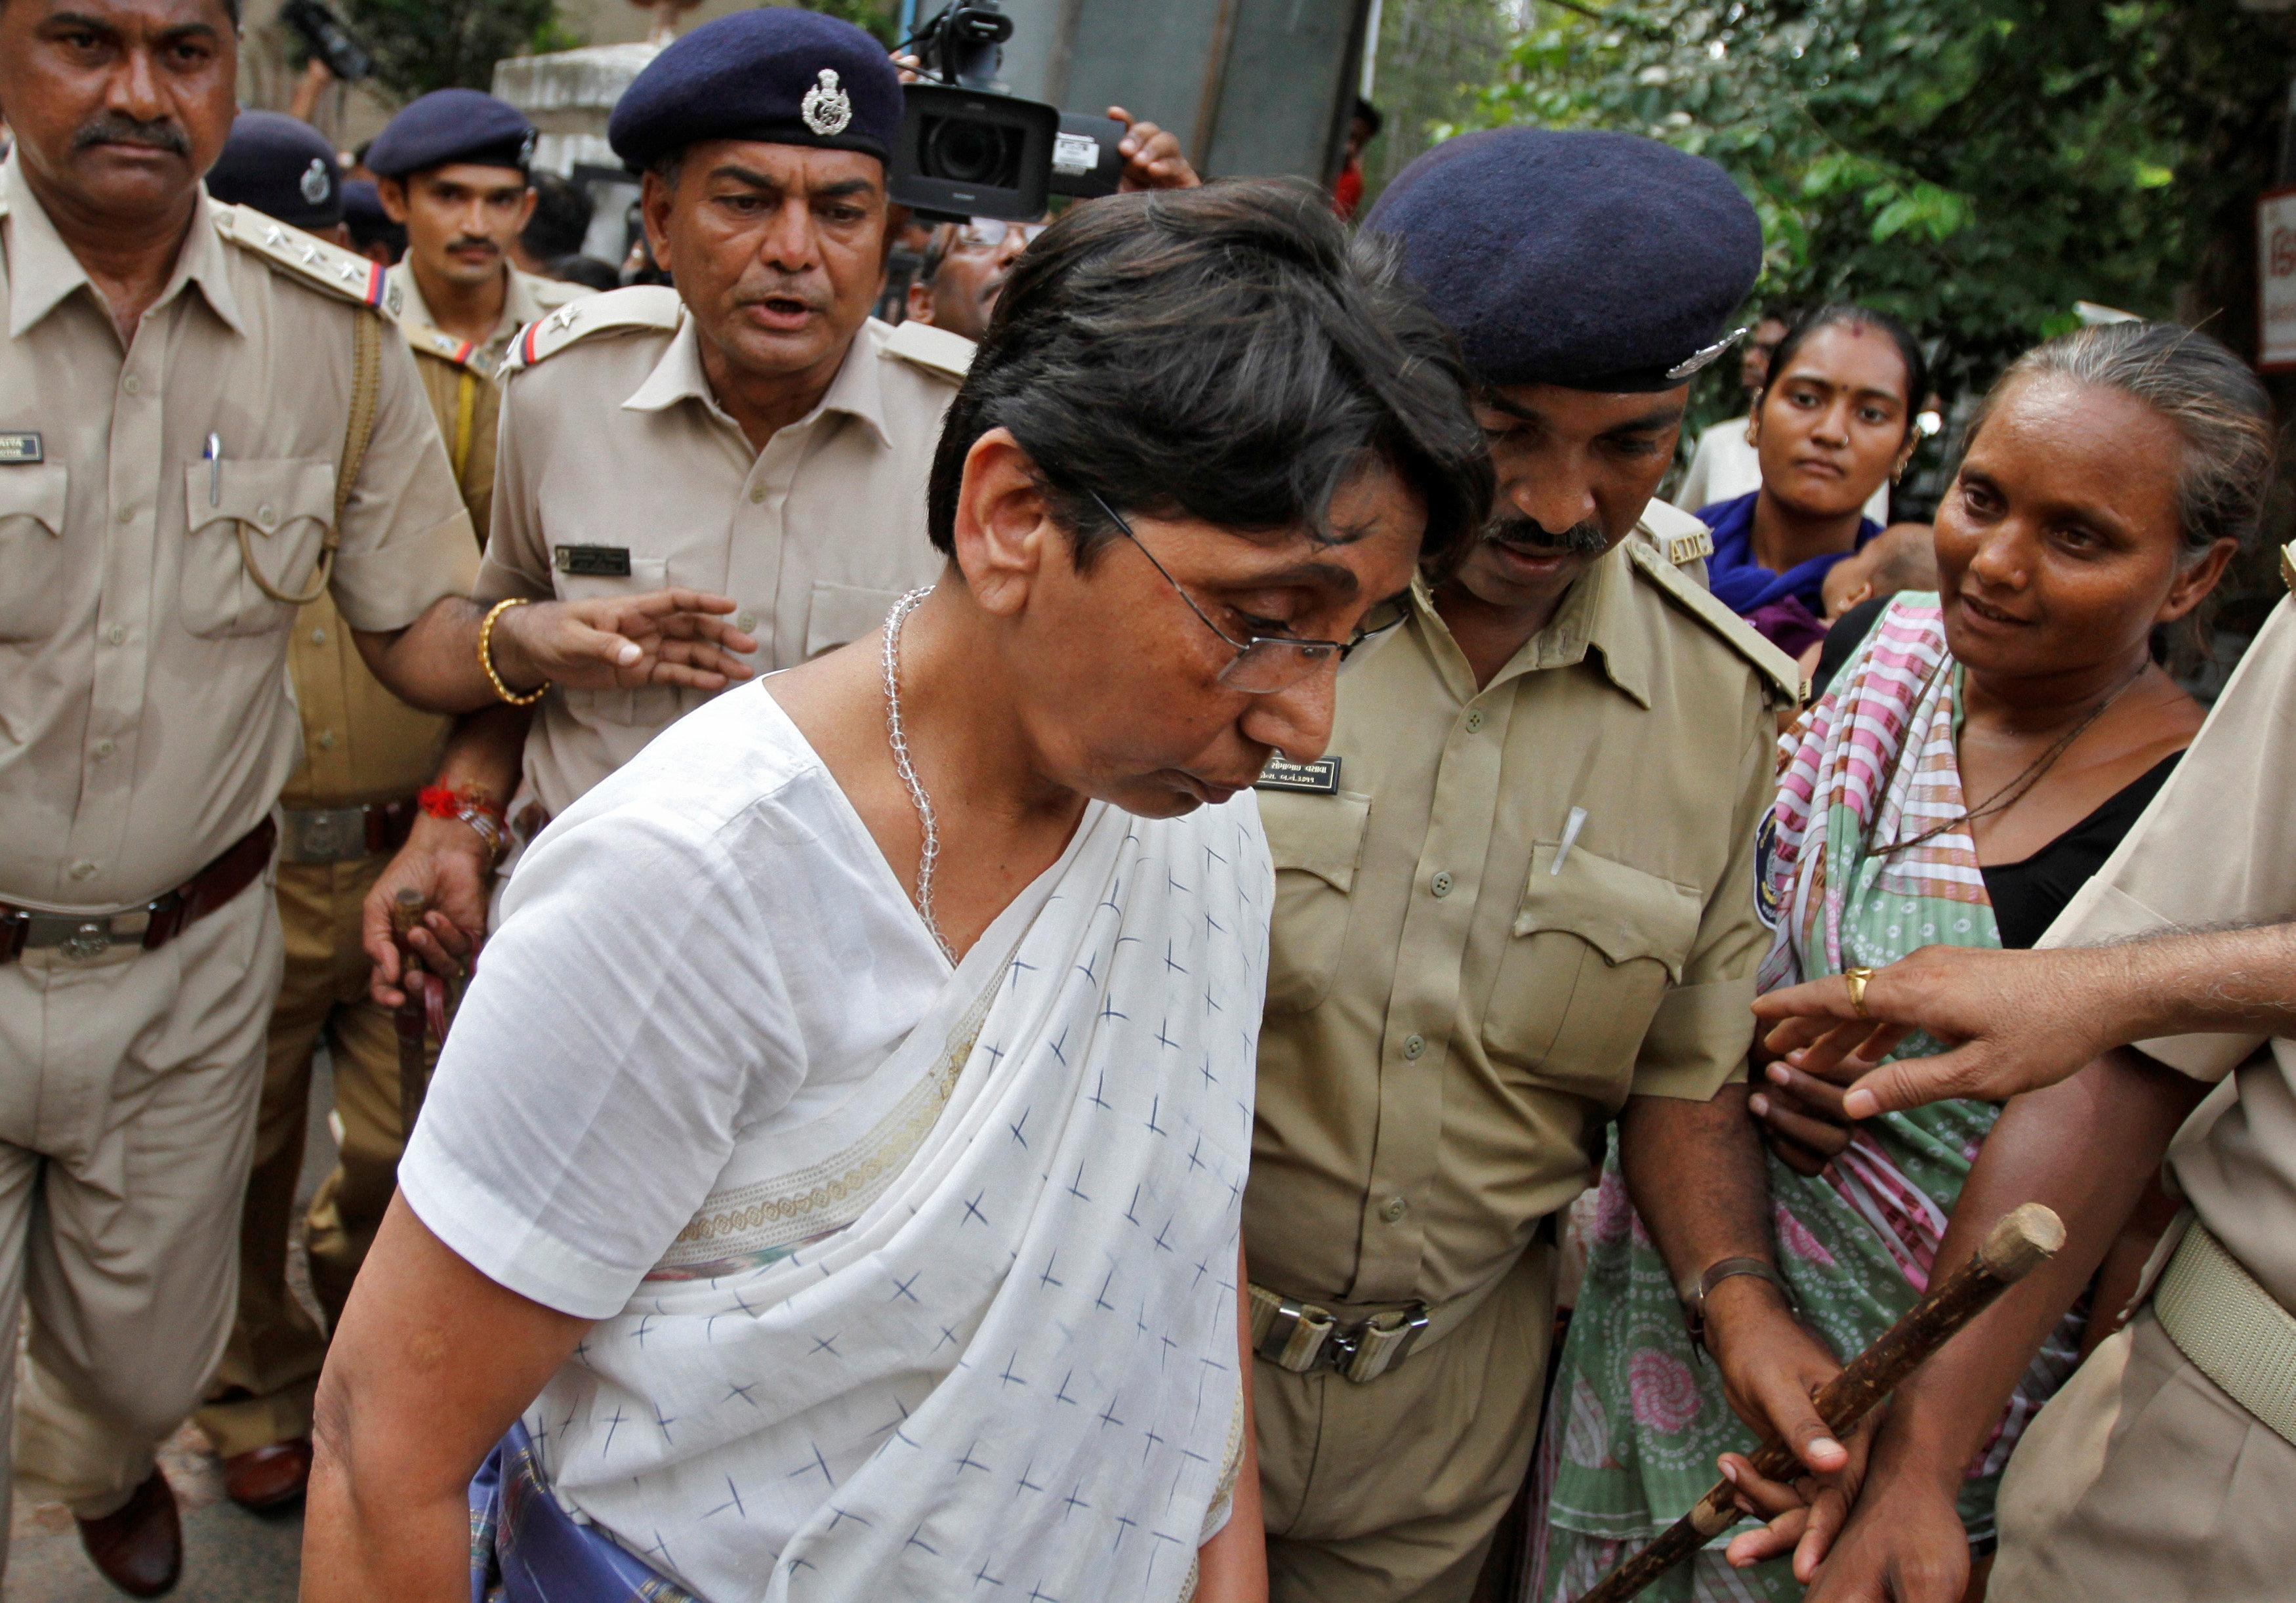 Maya Kodnani, a sitting lawmaker from the state's ruling Hindu nationalist Bharatiya Janata Party (BJP) and Gujarat minister for women and child development between 2007-2009, arrives at a court in the western Indian city of Ahmedabad August 31, 2012. Amit Dave